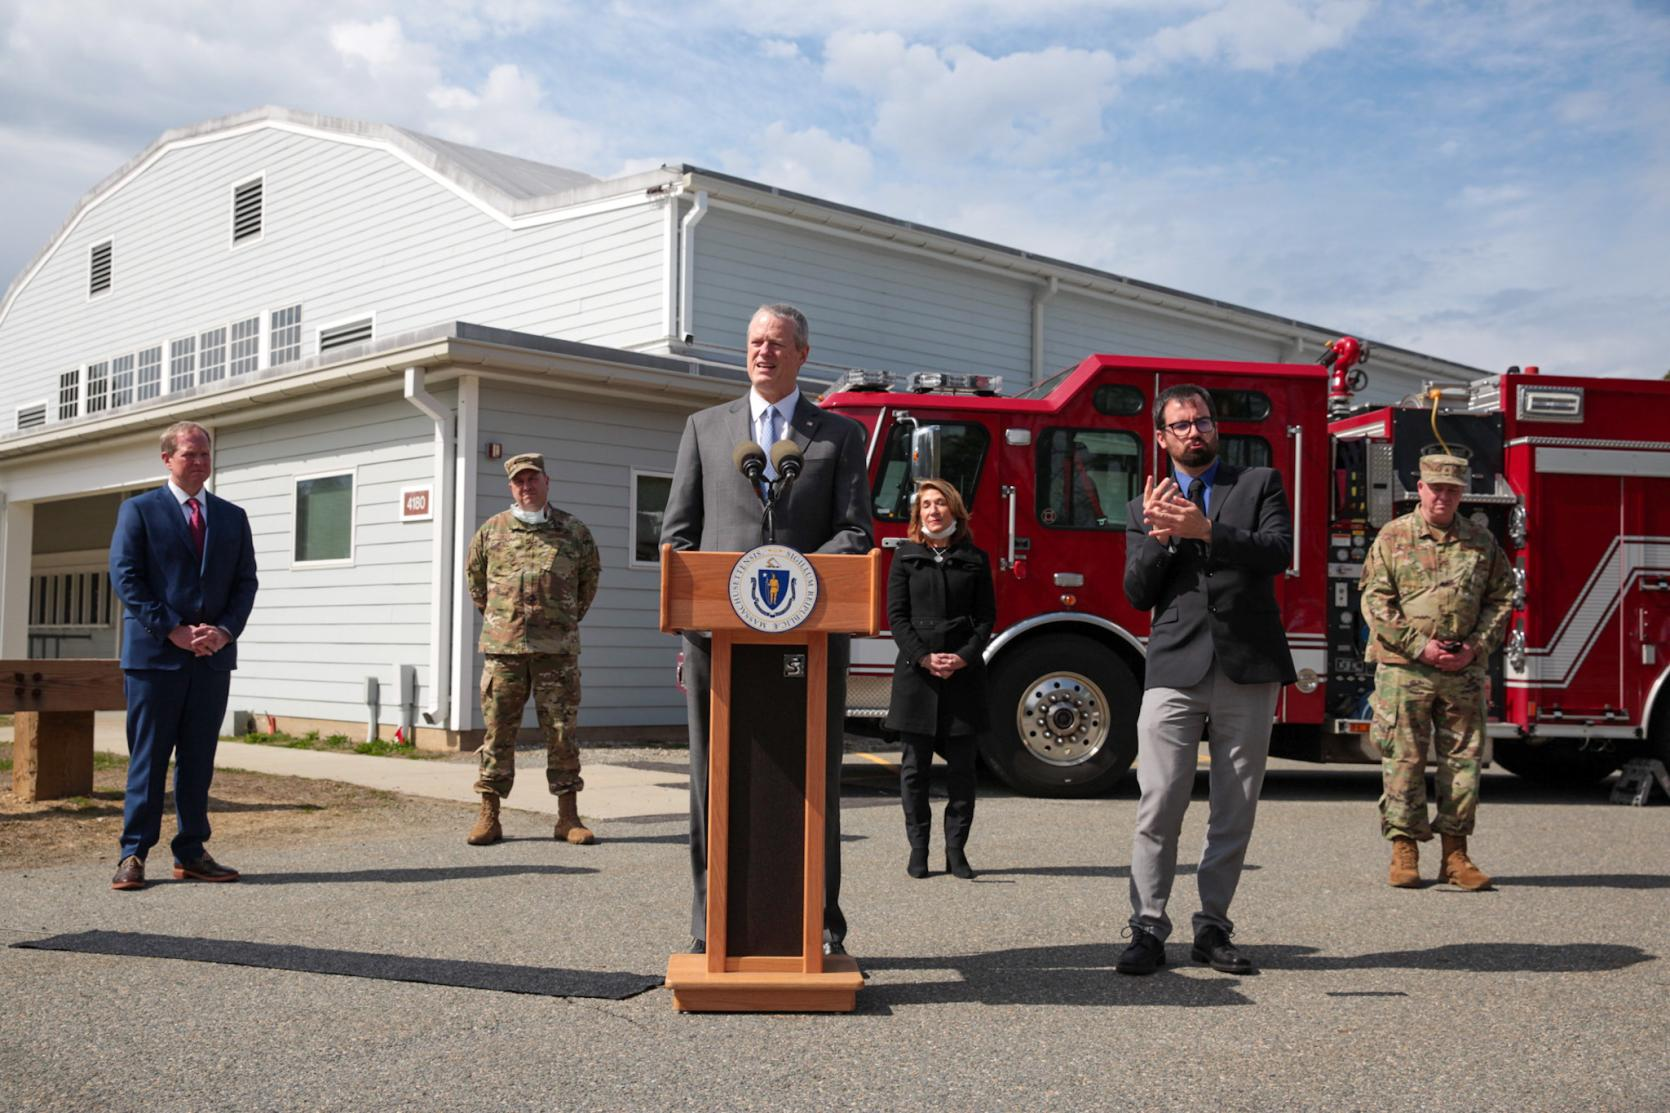 Governor Baker, Lt. Governor Polito Tour Field Medical Station at Joint Base Cape Cod, Announce Further COVID-19 Response Reporting Data